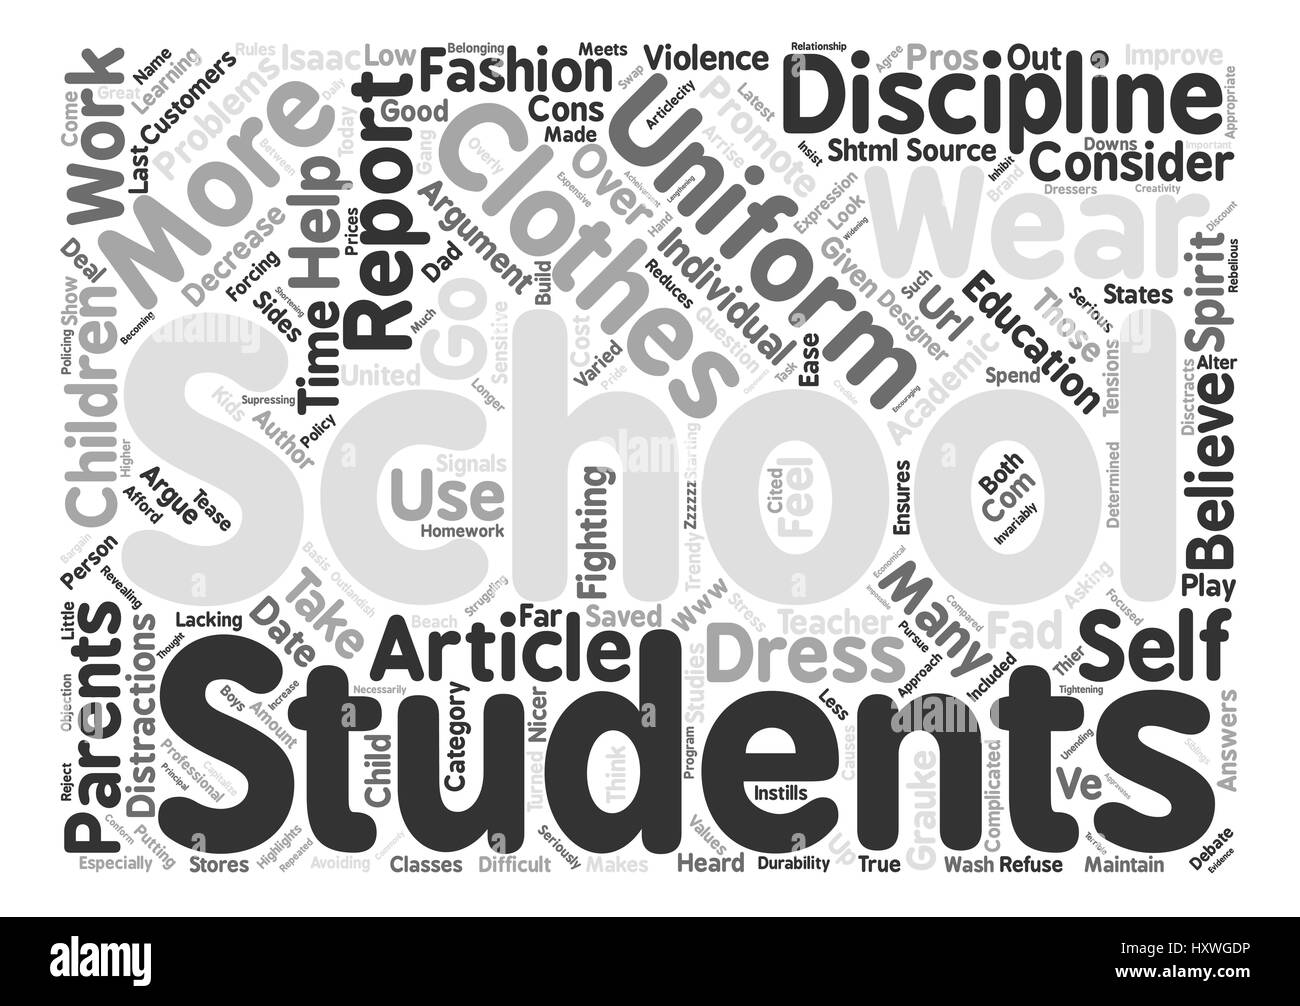 Pros and Cons of School Uniforms text background word cloud concept - Stock Vector